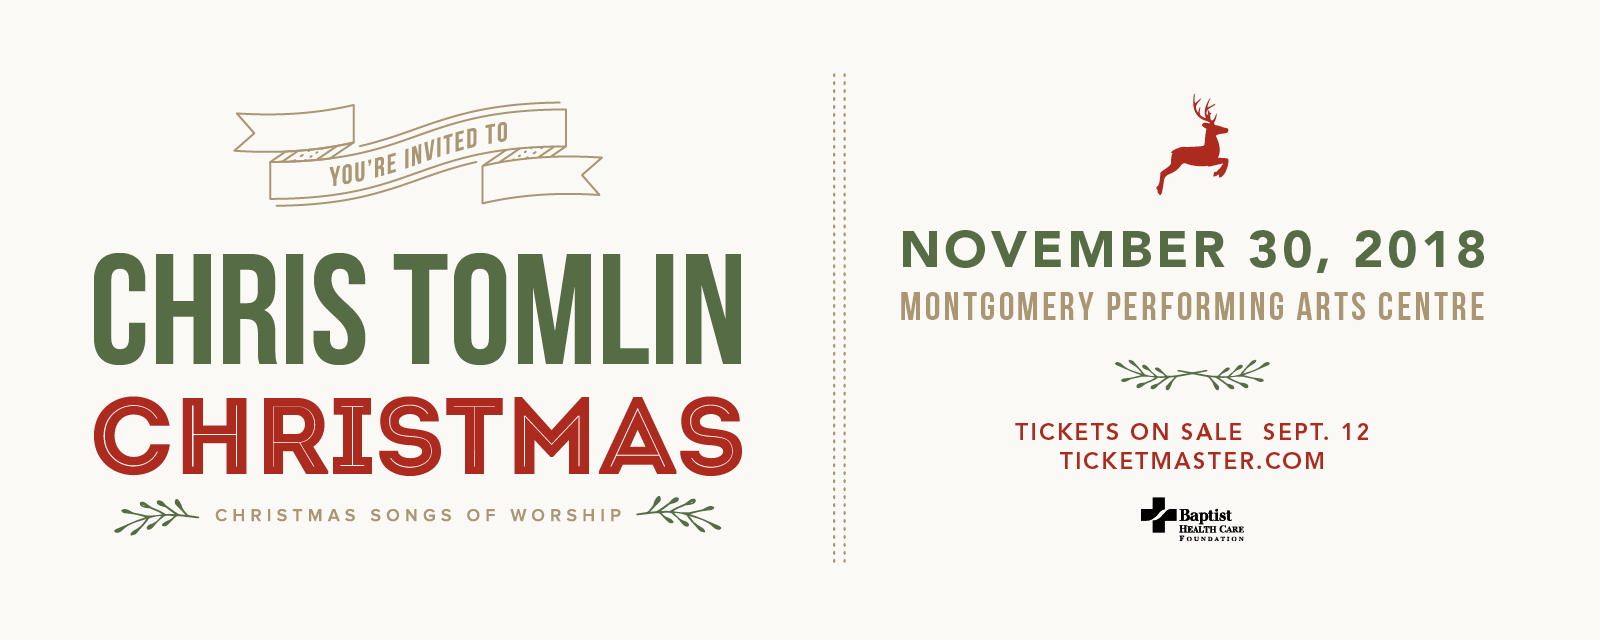 the baptist health care foundation proudly presents chris tomlin christmas